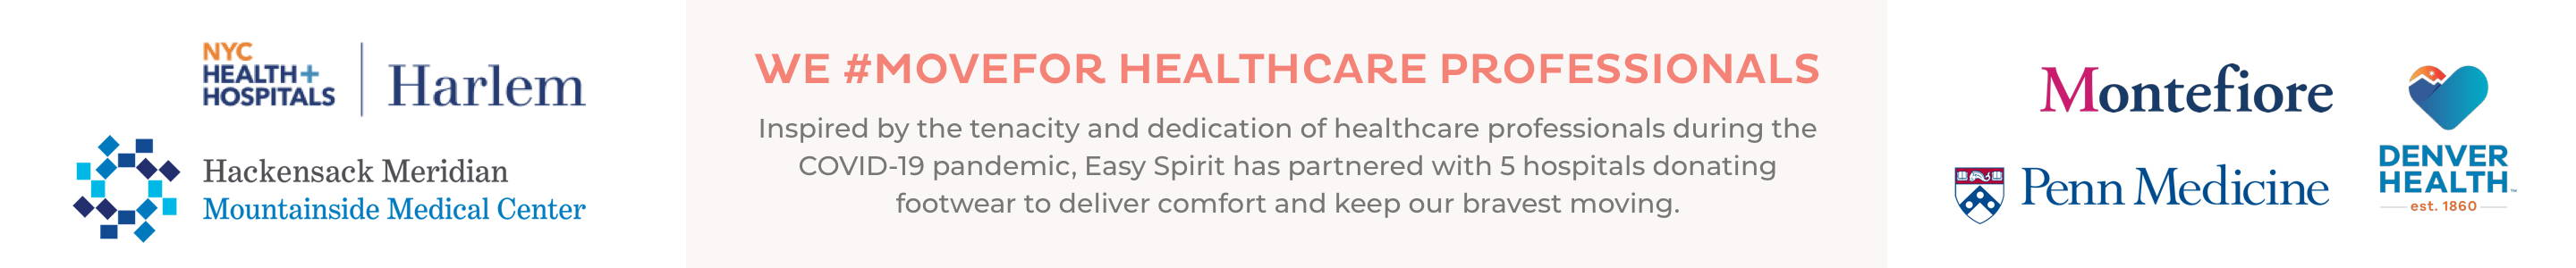 We #MOVEFOR Healthcare Professionals